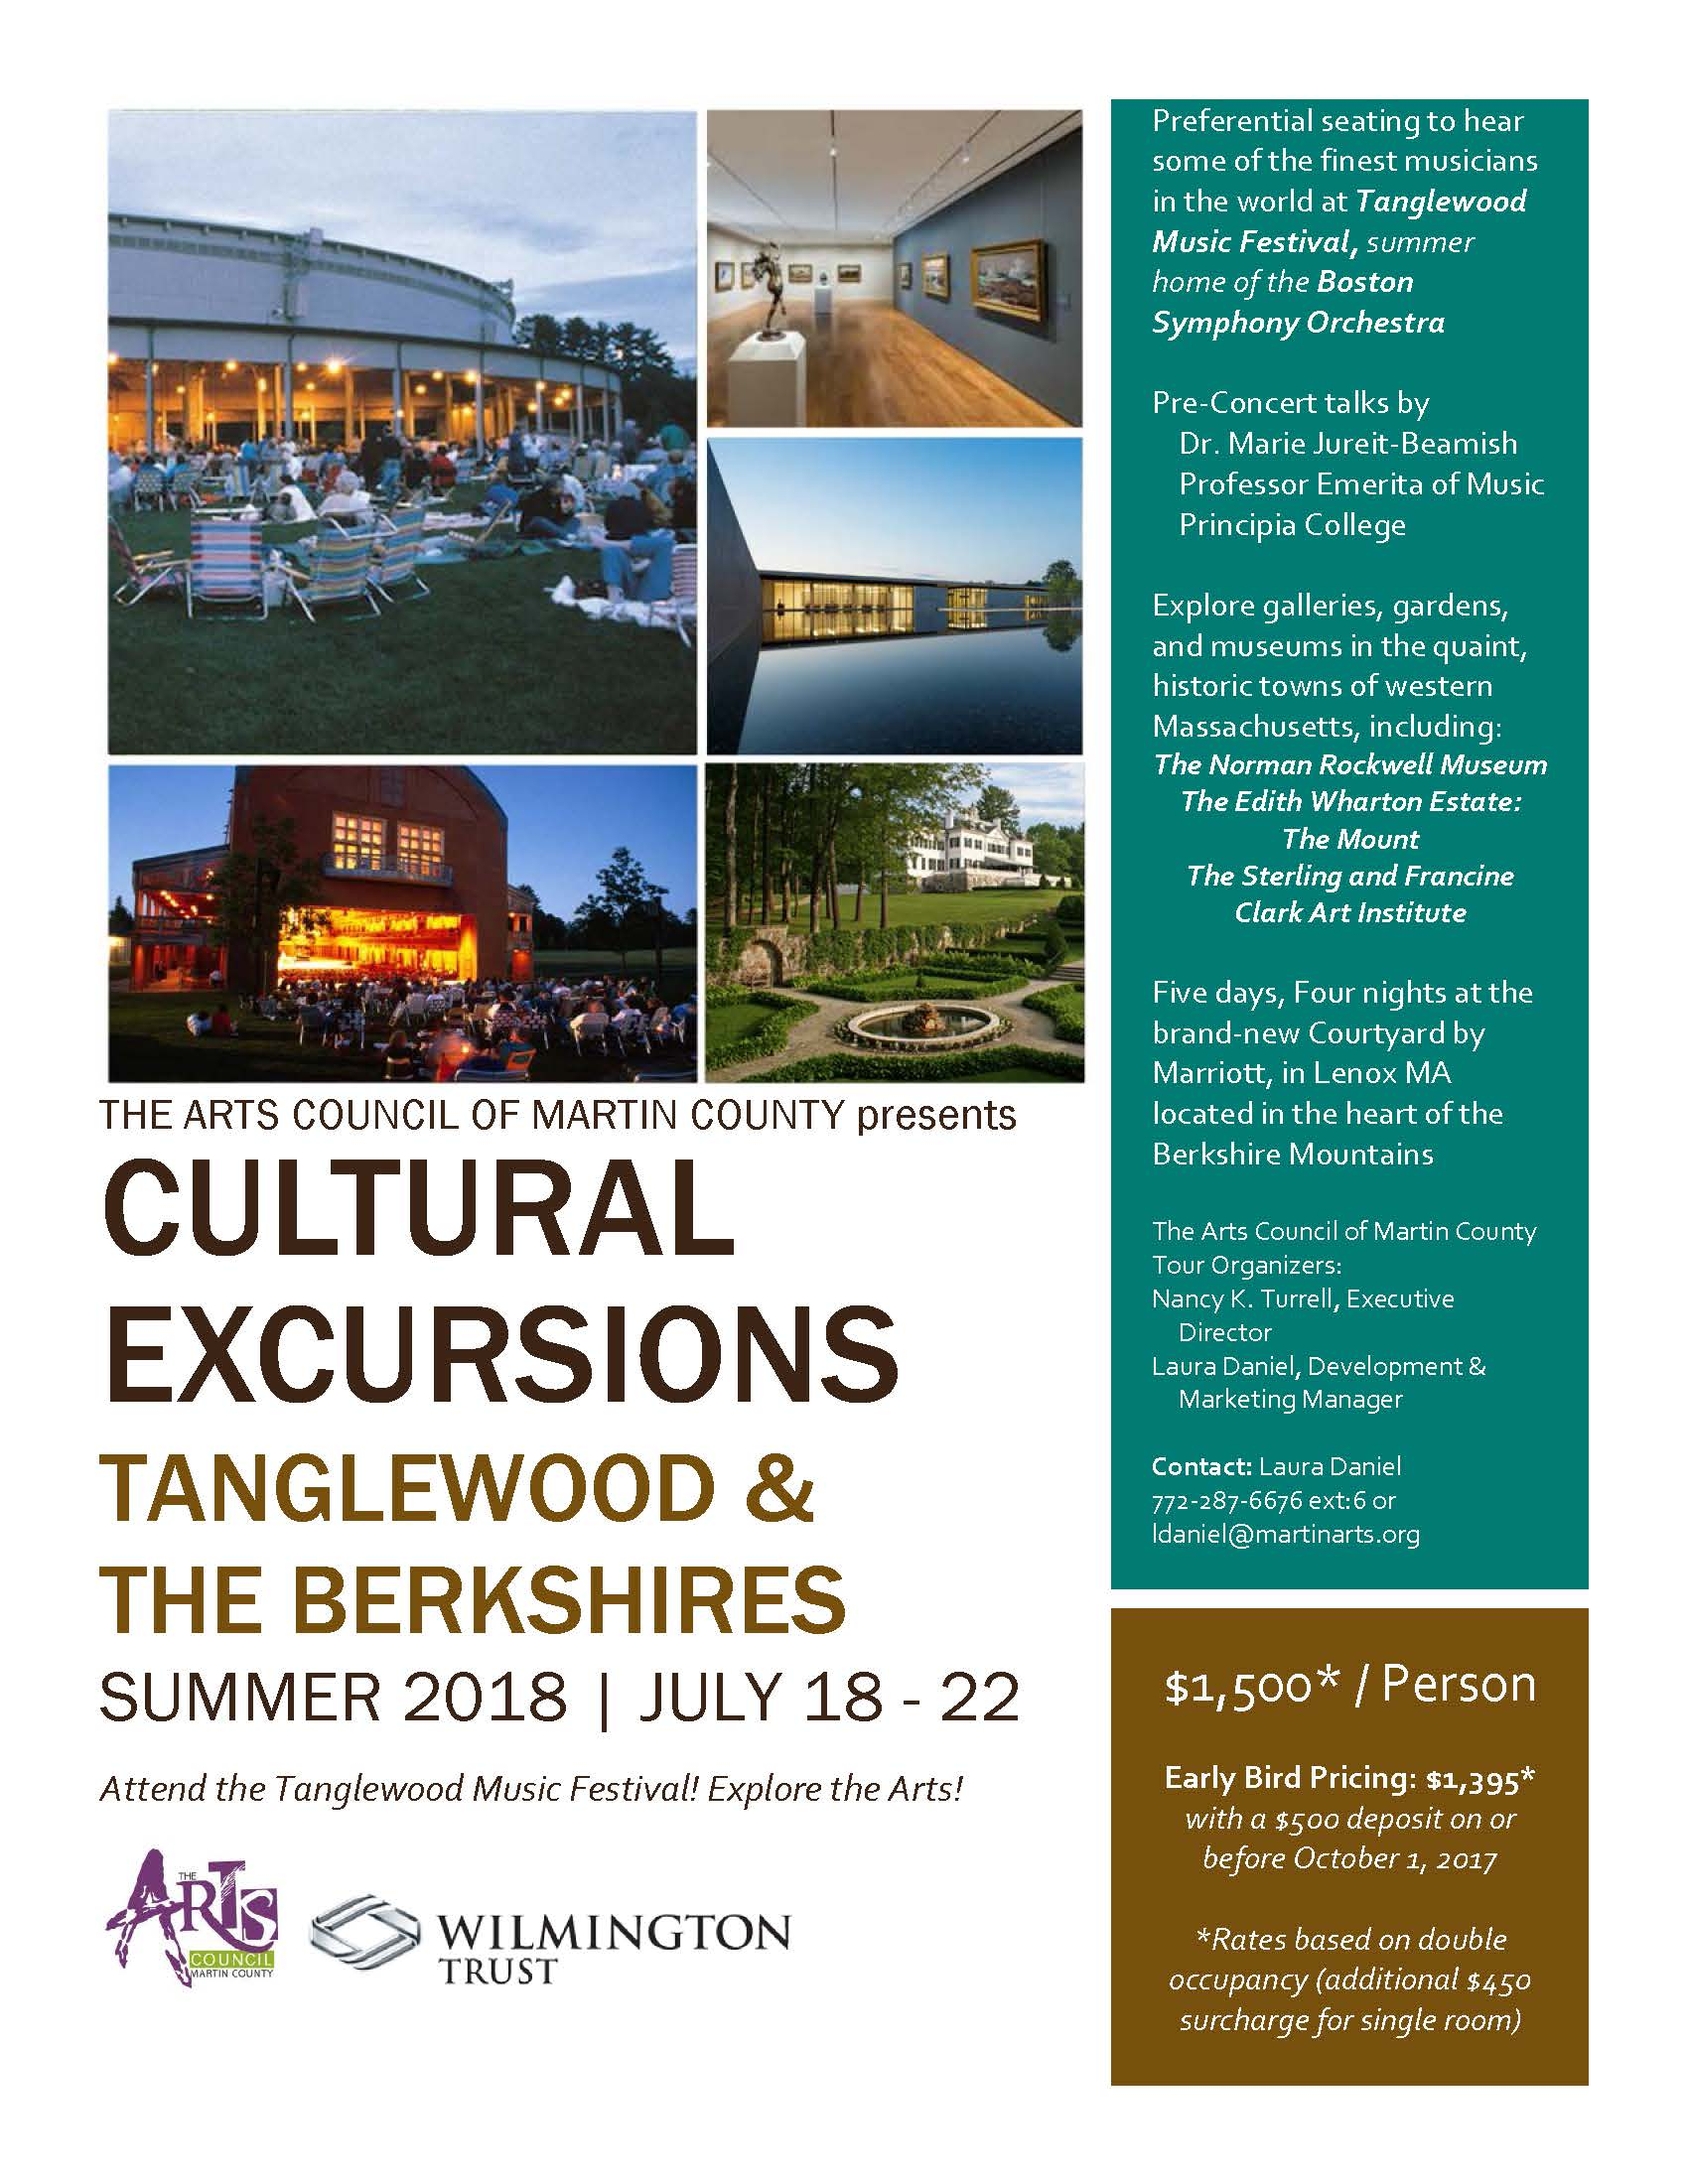 Cultural Excursions: Tanglewood & The Berkshires